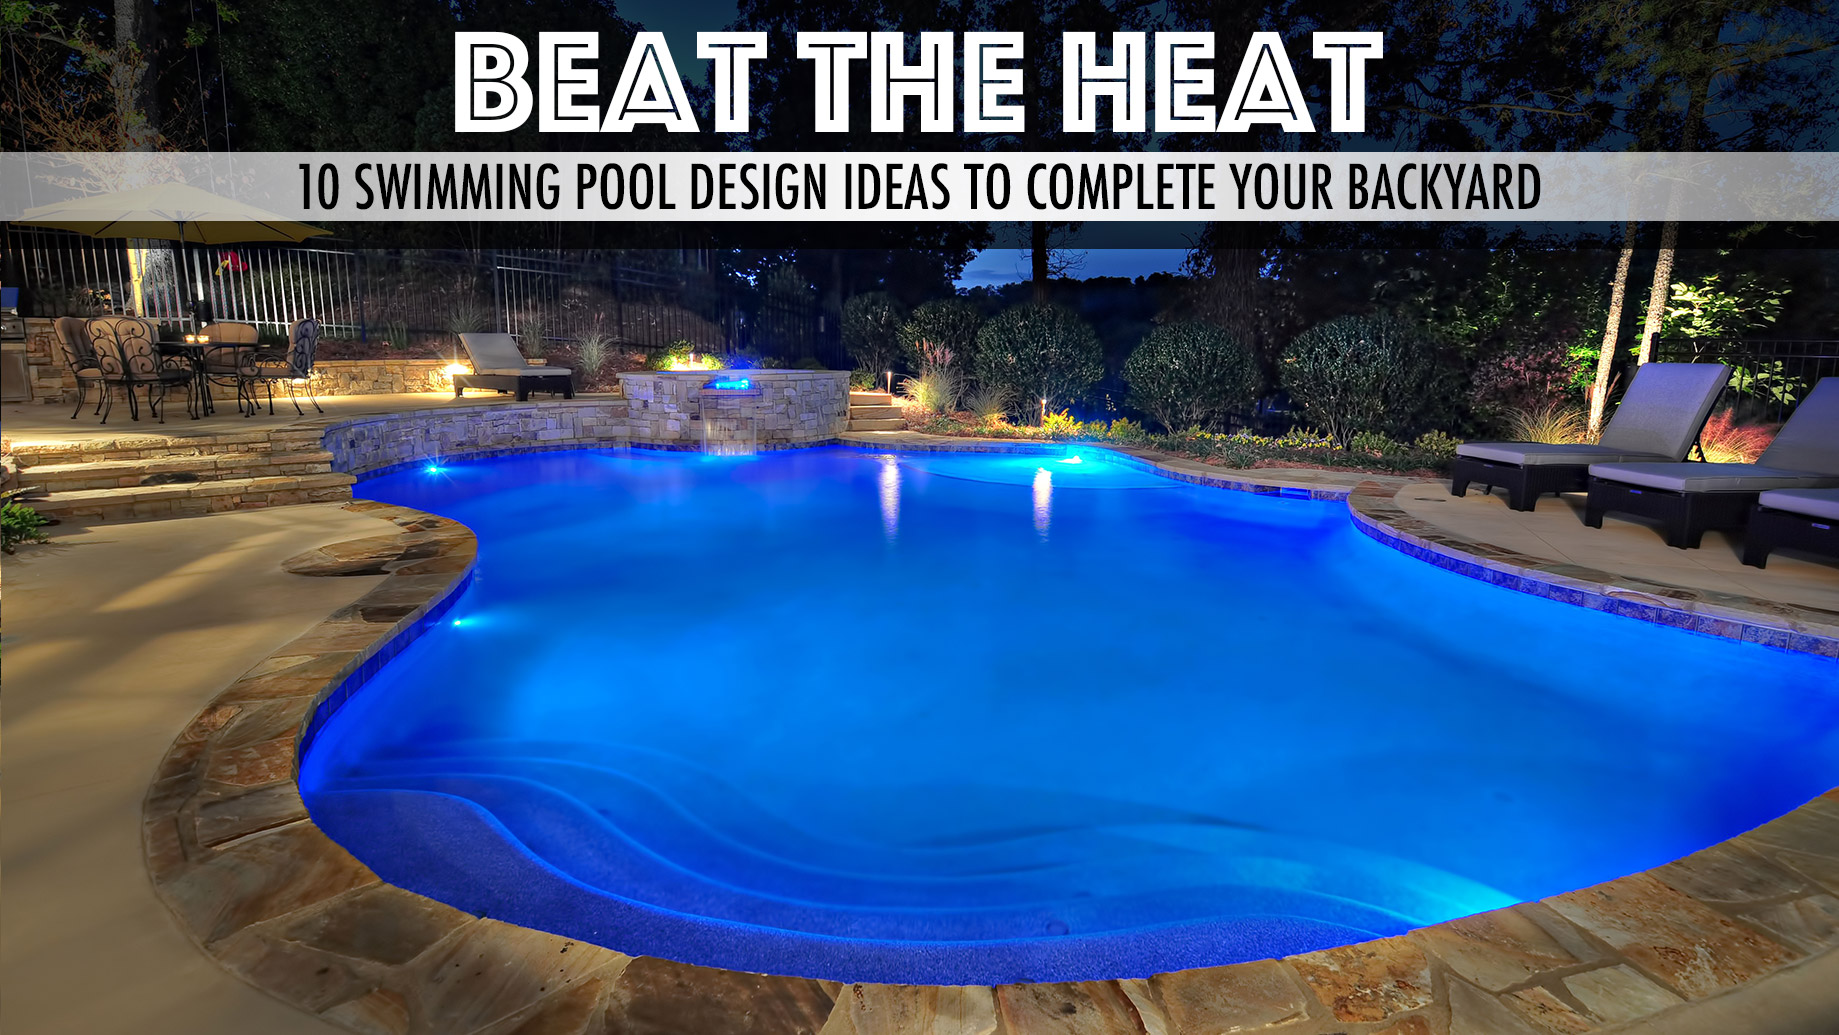 Beat The Heat 10 Swimming Pool Design Ideas To Complete Your Backyard The Pinnacle List